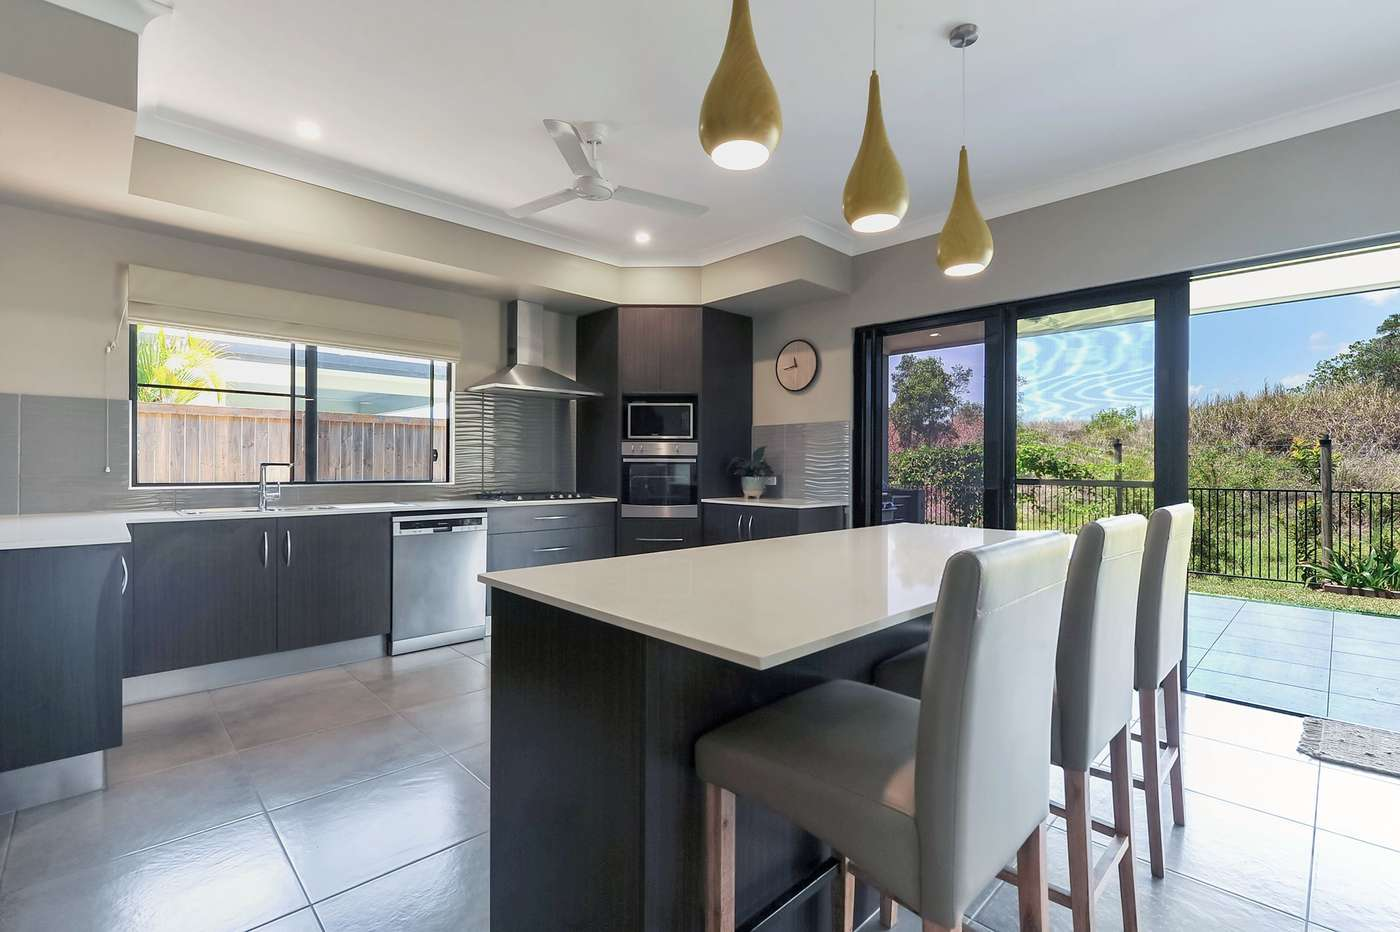 Main view of Homely house listing, 37 Milman Drive, Port Douglas, QLD 4877